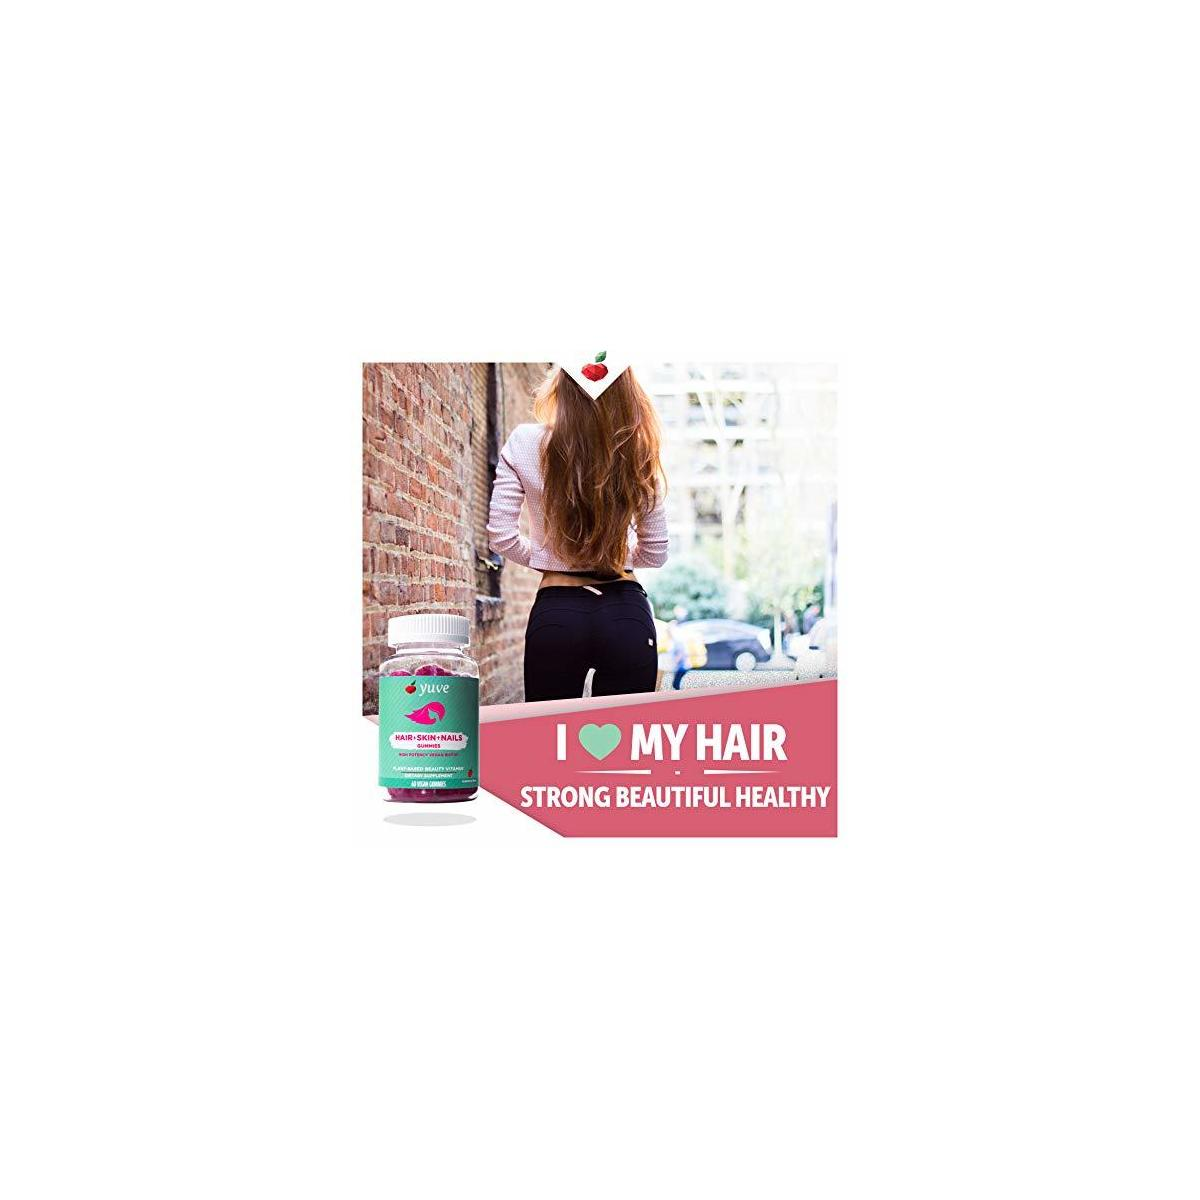 Yuve Vegan Biotin 5000 mcg Gummies - For Longer, Stronger, Healthier Hair Growth - Glowing Skin and Strong Nails - Natural, Non-GMO, Gluten and Gelatin Free - High Potency Vitamin B7 Supplement - 60ct